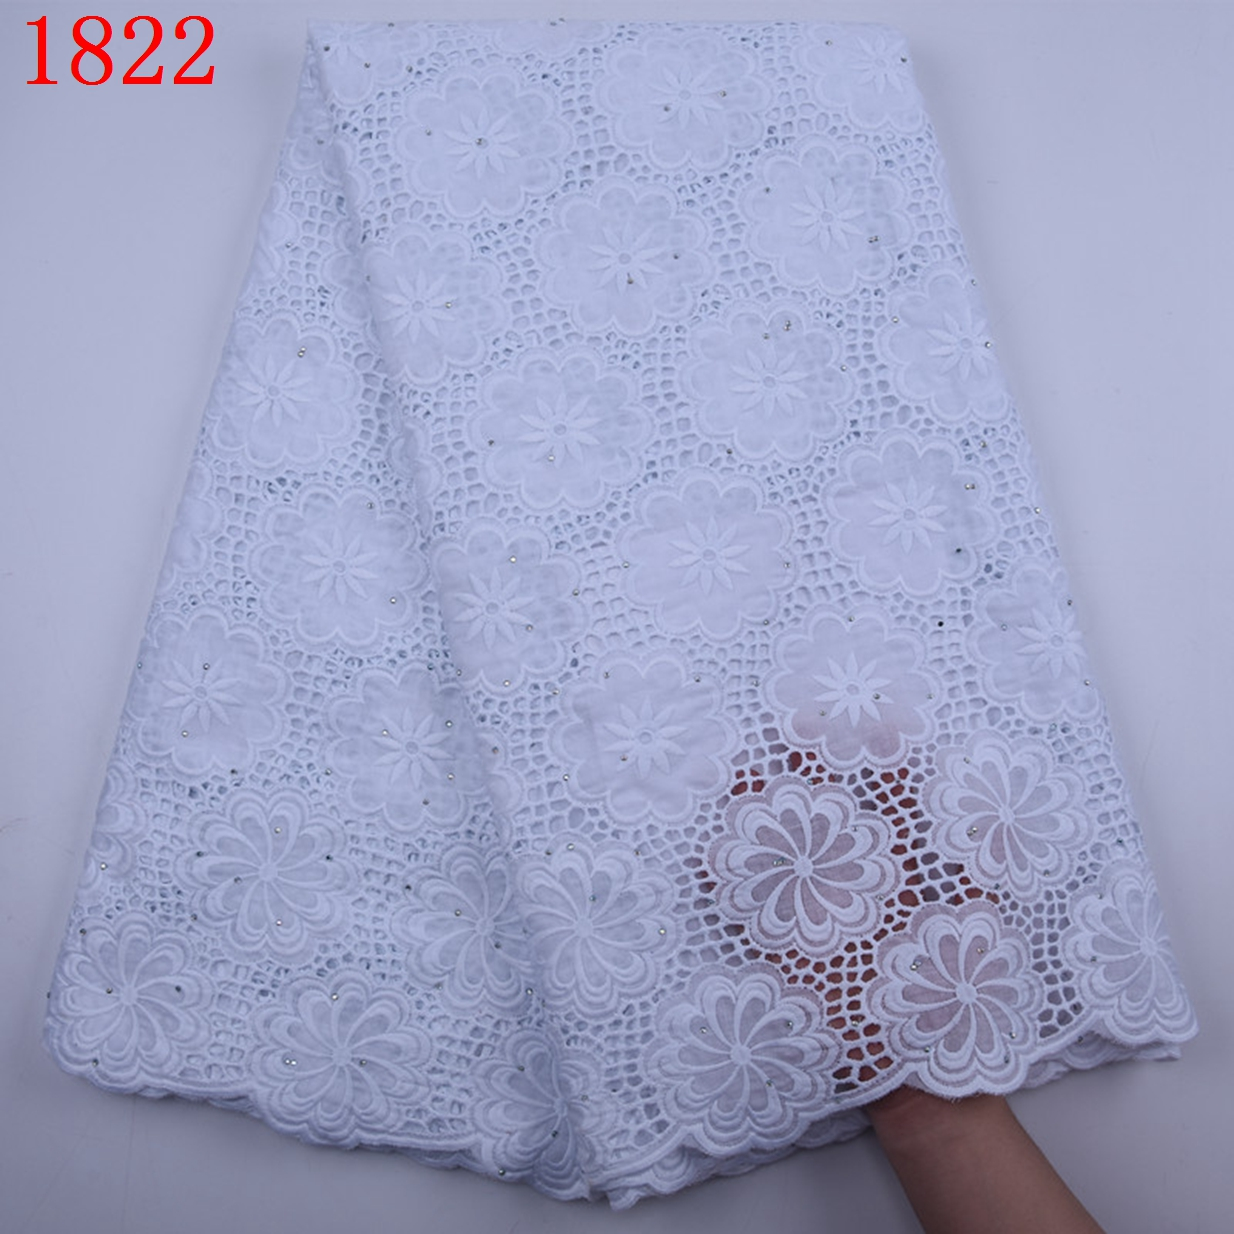 Hot Selling African Swiss Voile Cotton Lace Fabric With Stones For Party High Quality Dry Voile Cotton Lace For Dress 1822